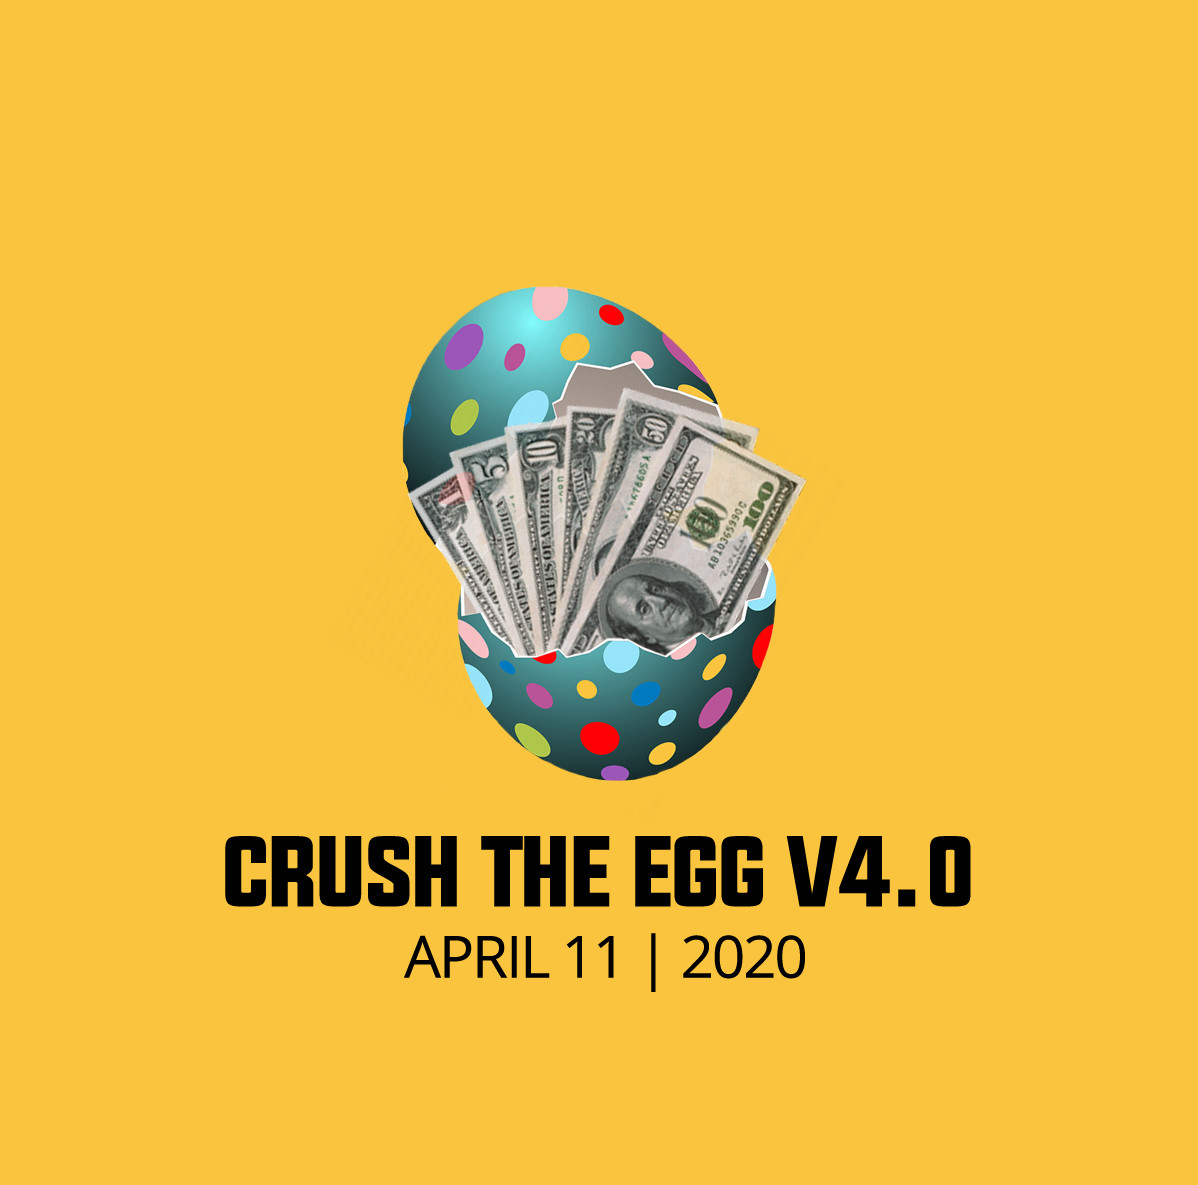 Upstate - Crush the Egg v4.0